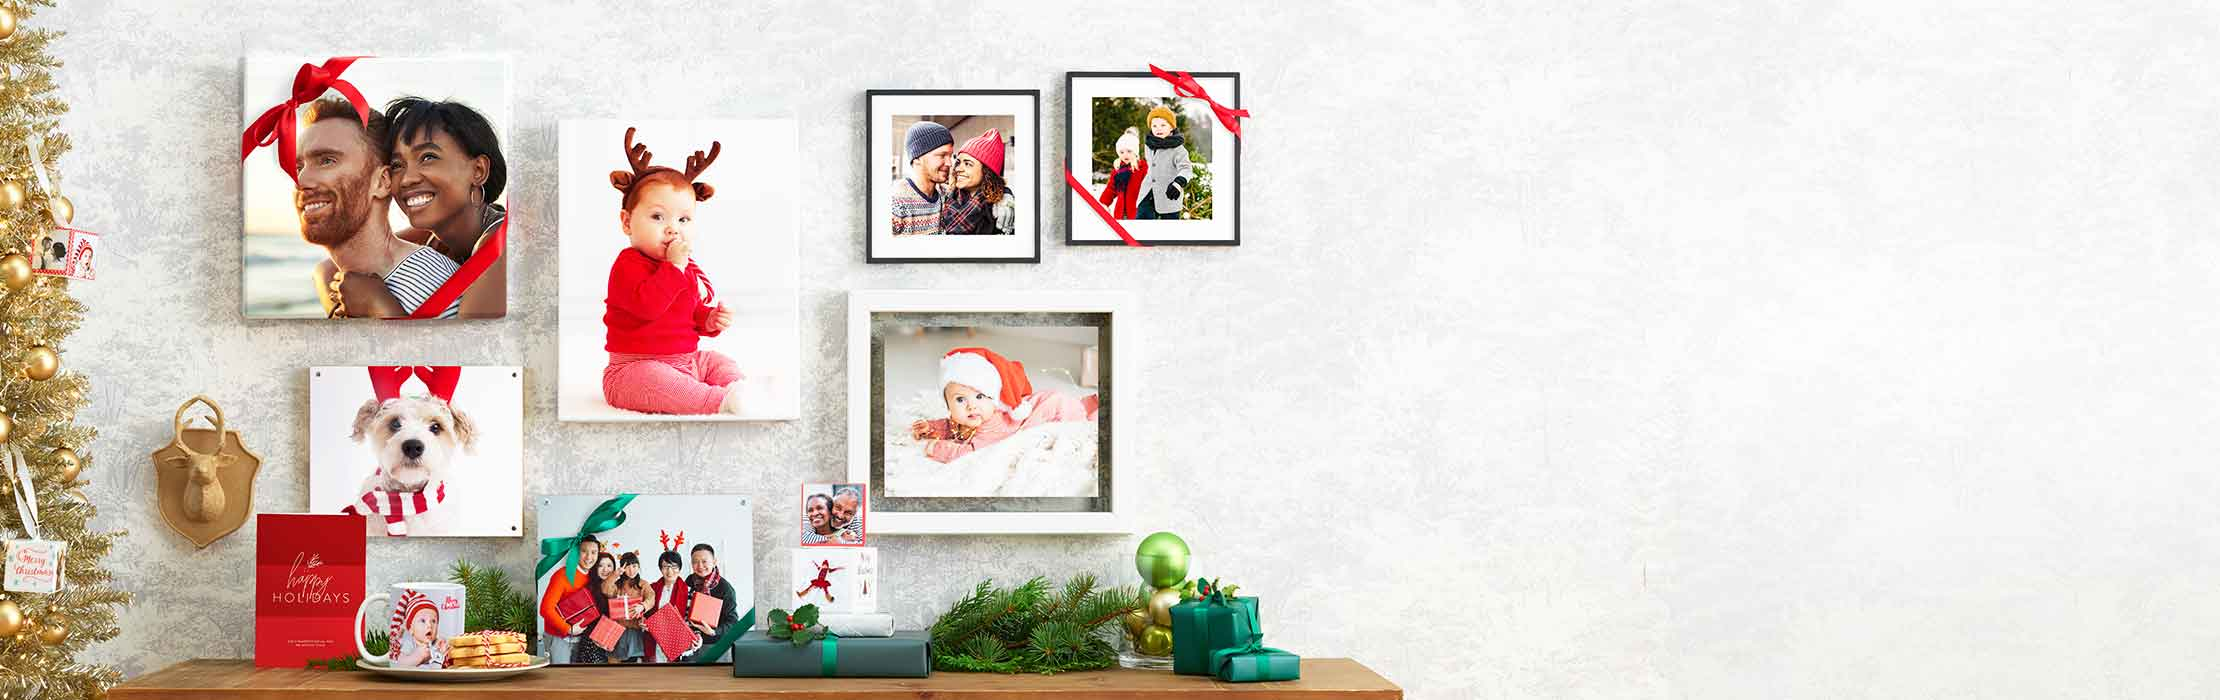 Easy-to-make mementos help spread holiday cheer.